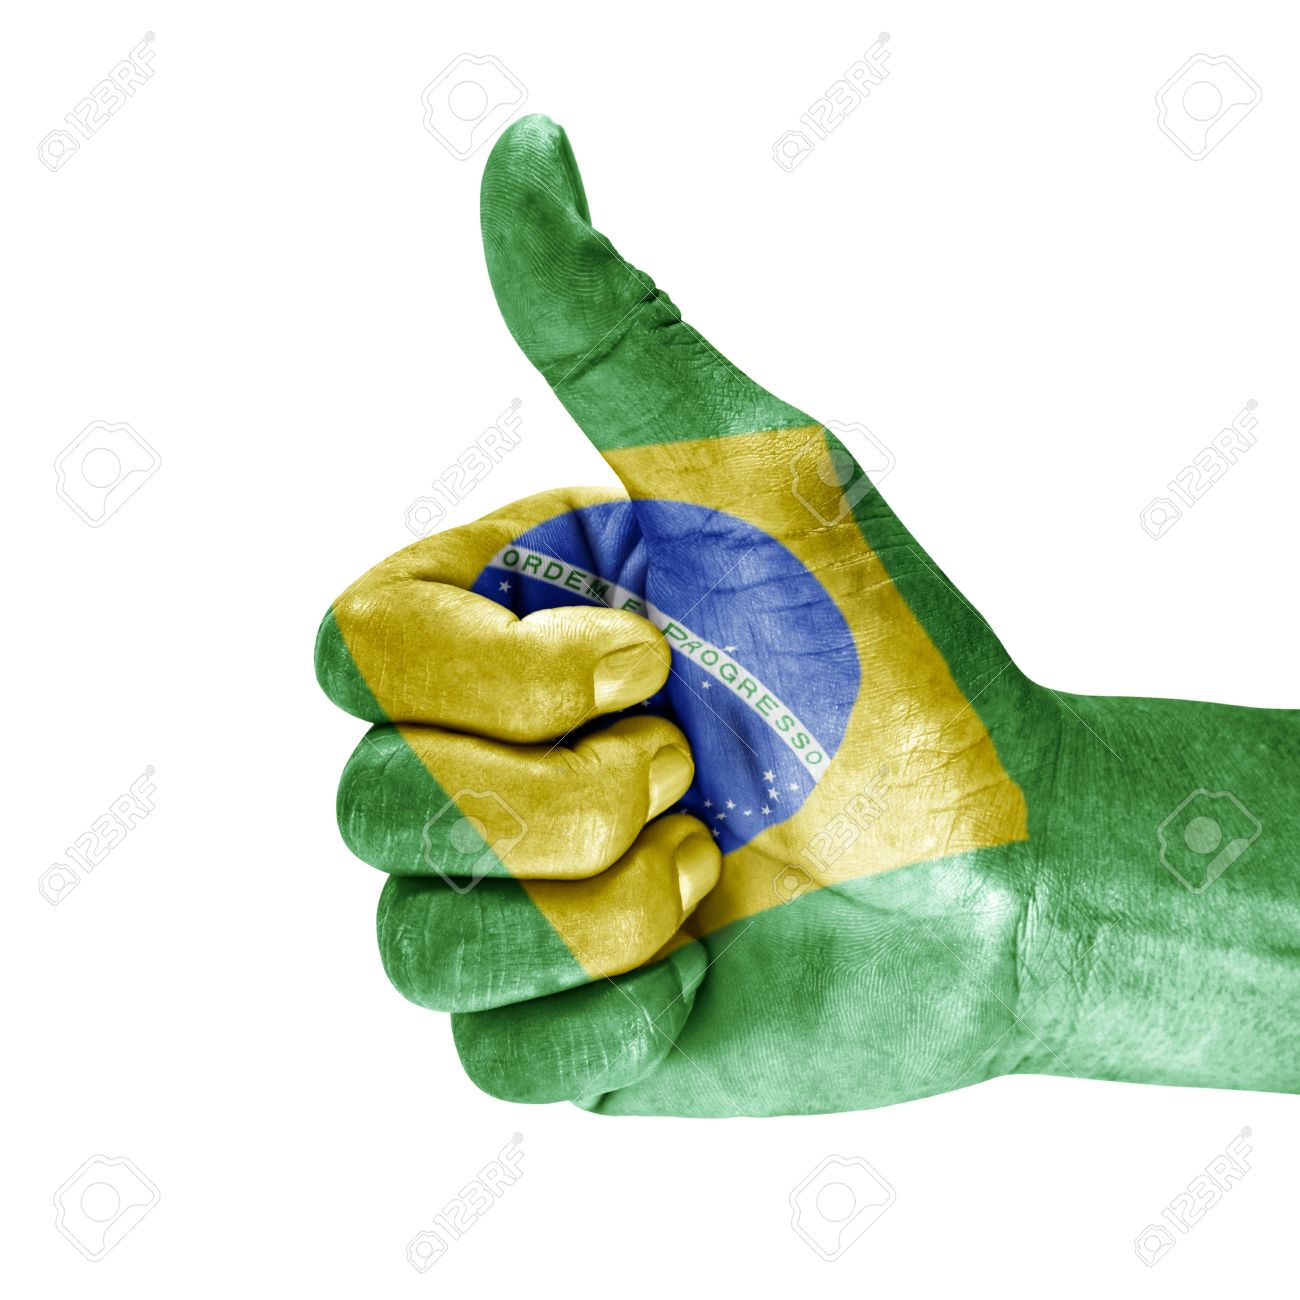 Flag of brazil on thumb up hand isolated on white background. Stock Photo - 15402894